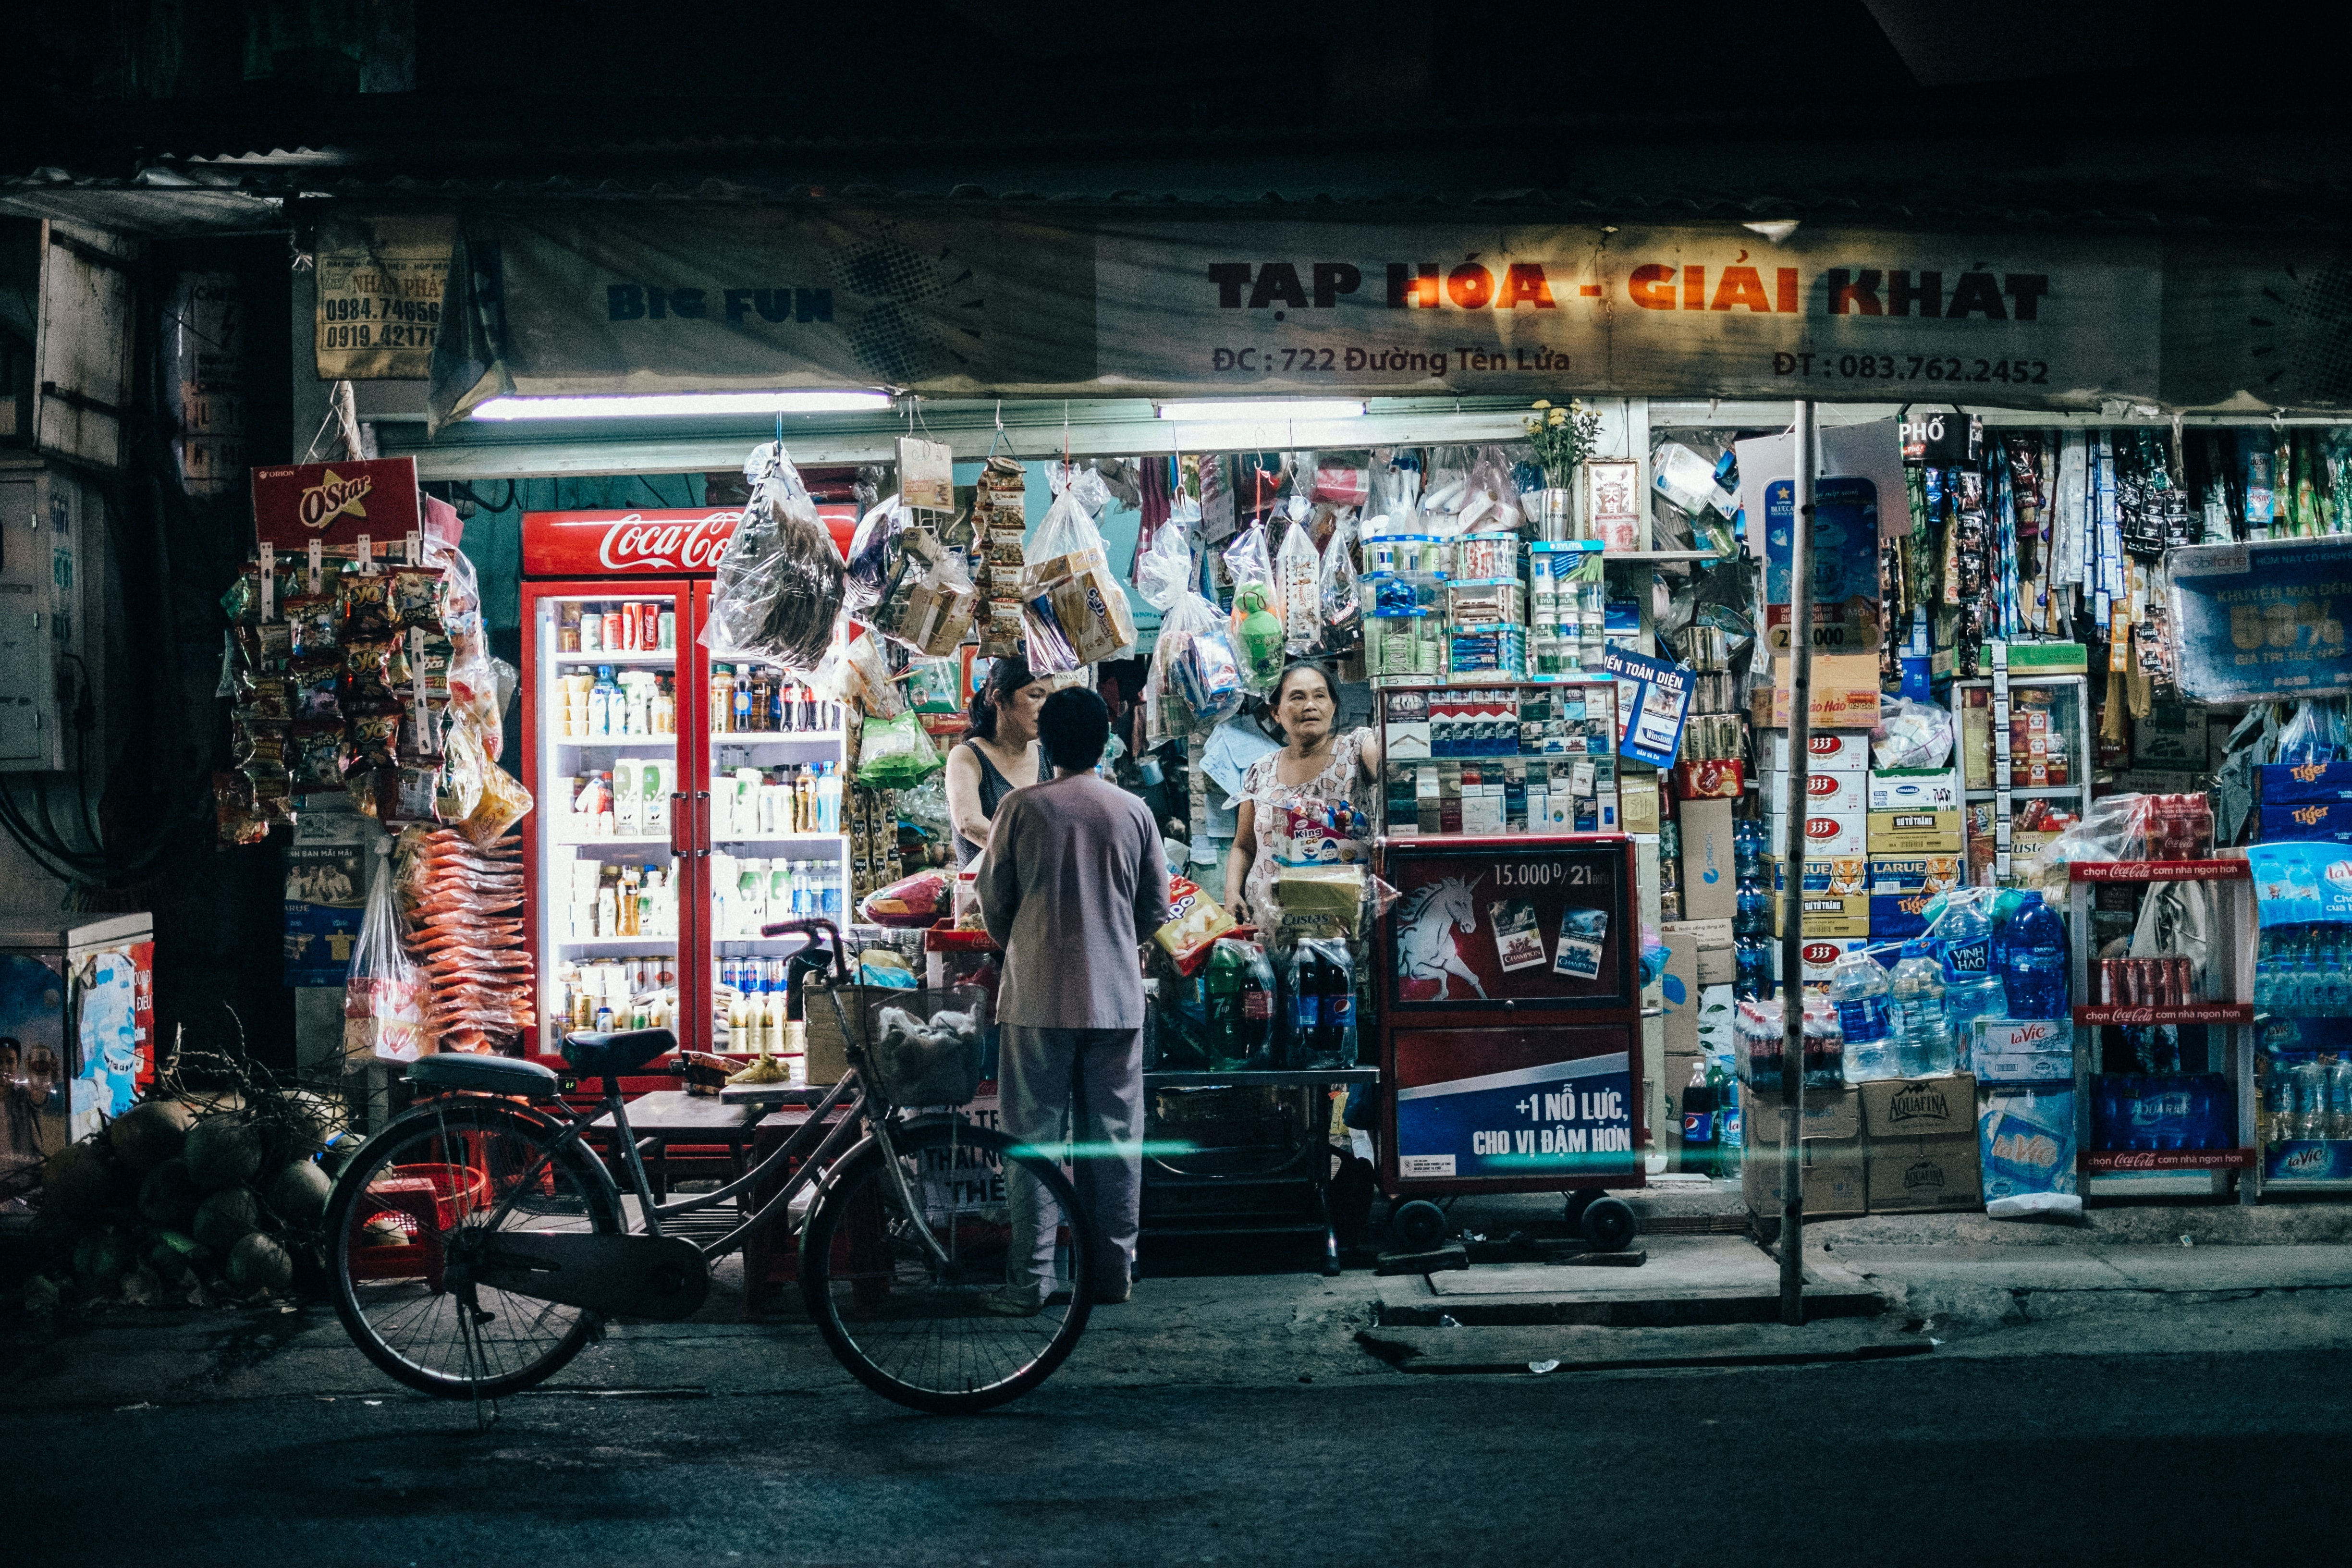 A person with a bike shopping at a street stall in Ho Chi Minh City at night